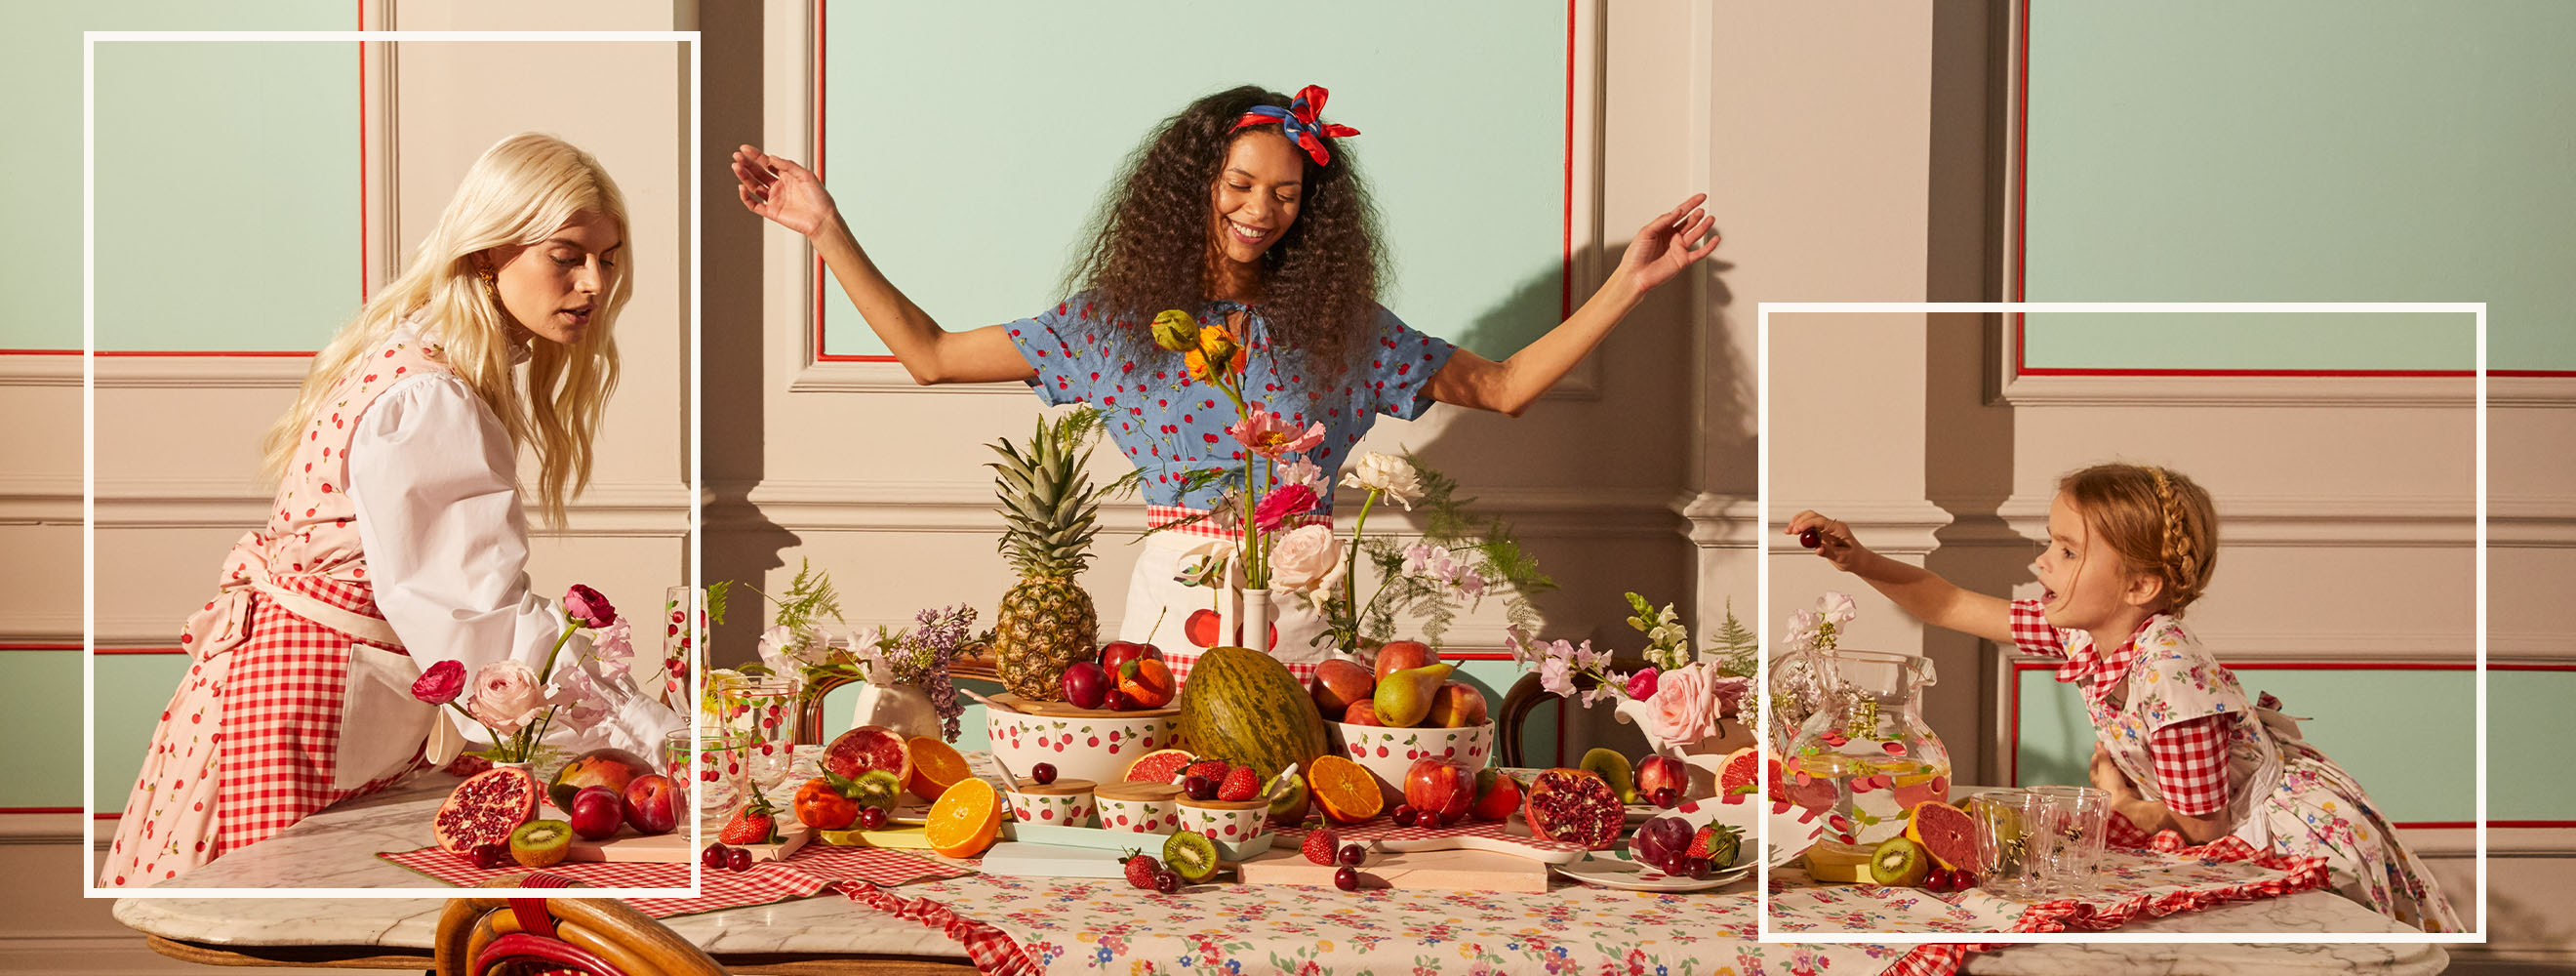 How to create the ultimate picnic table for summer with Cath Kidston